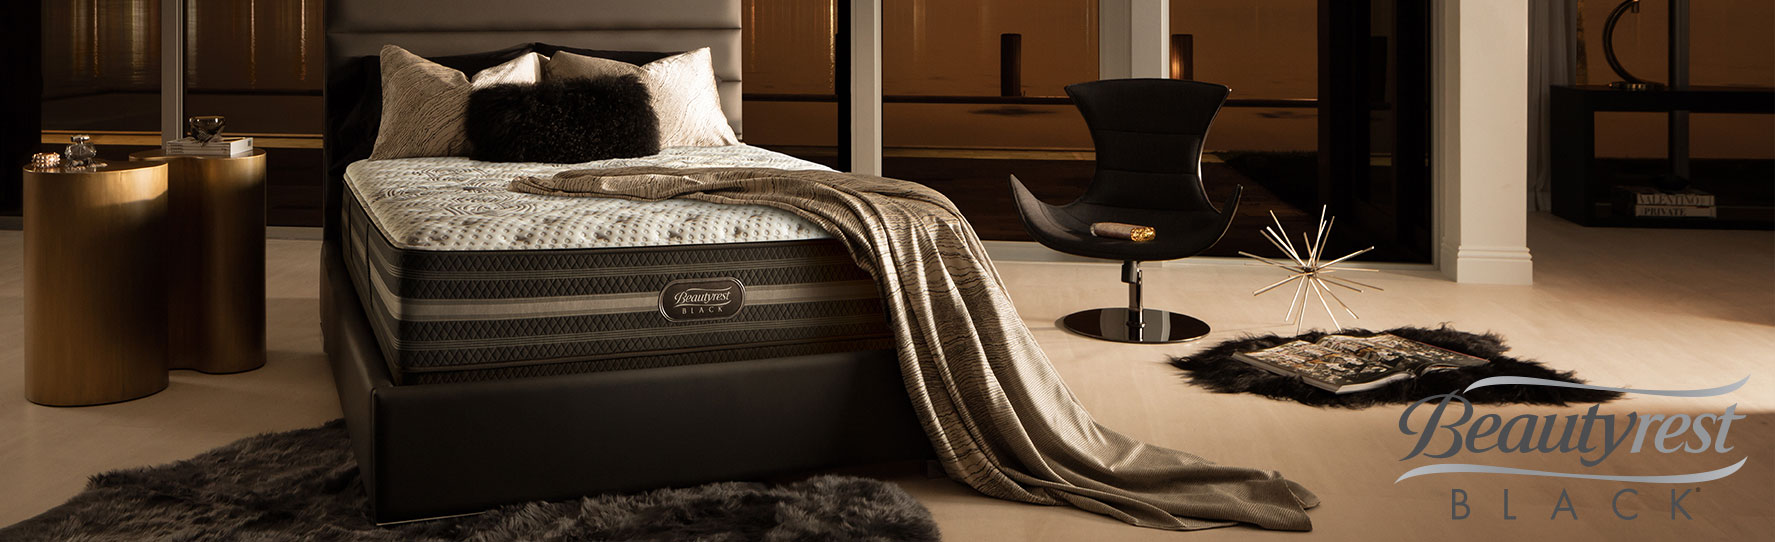 beautyrest black mattresses on sale